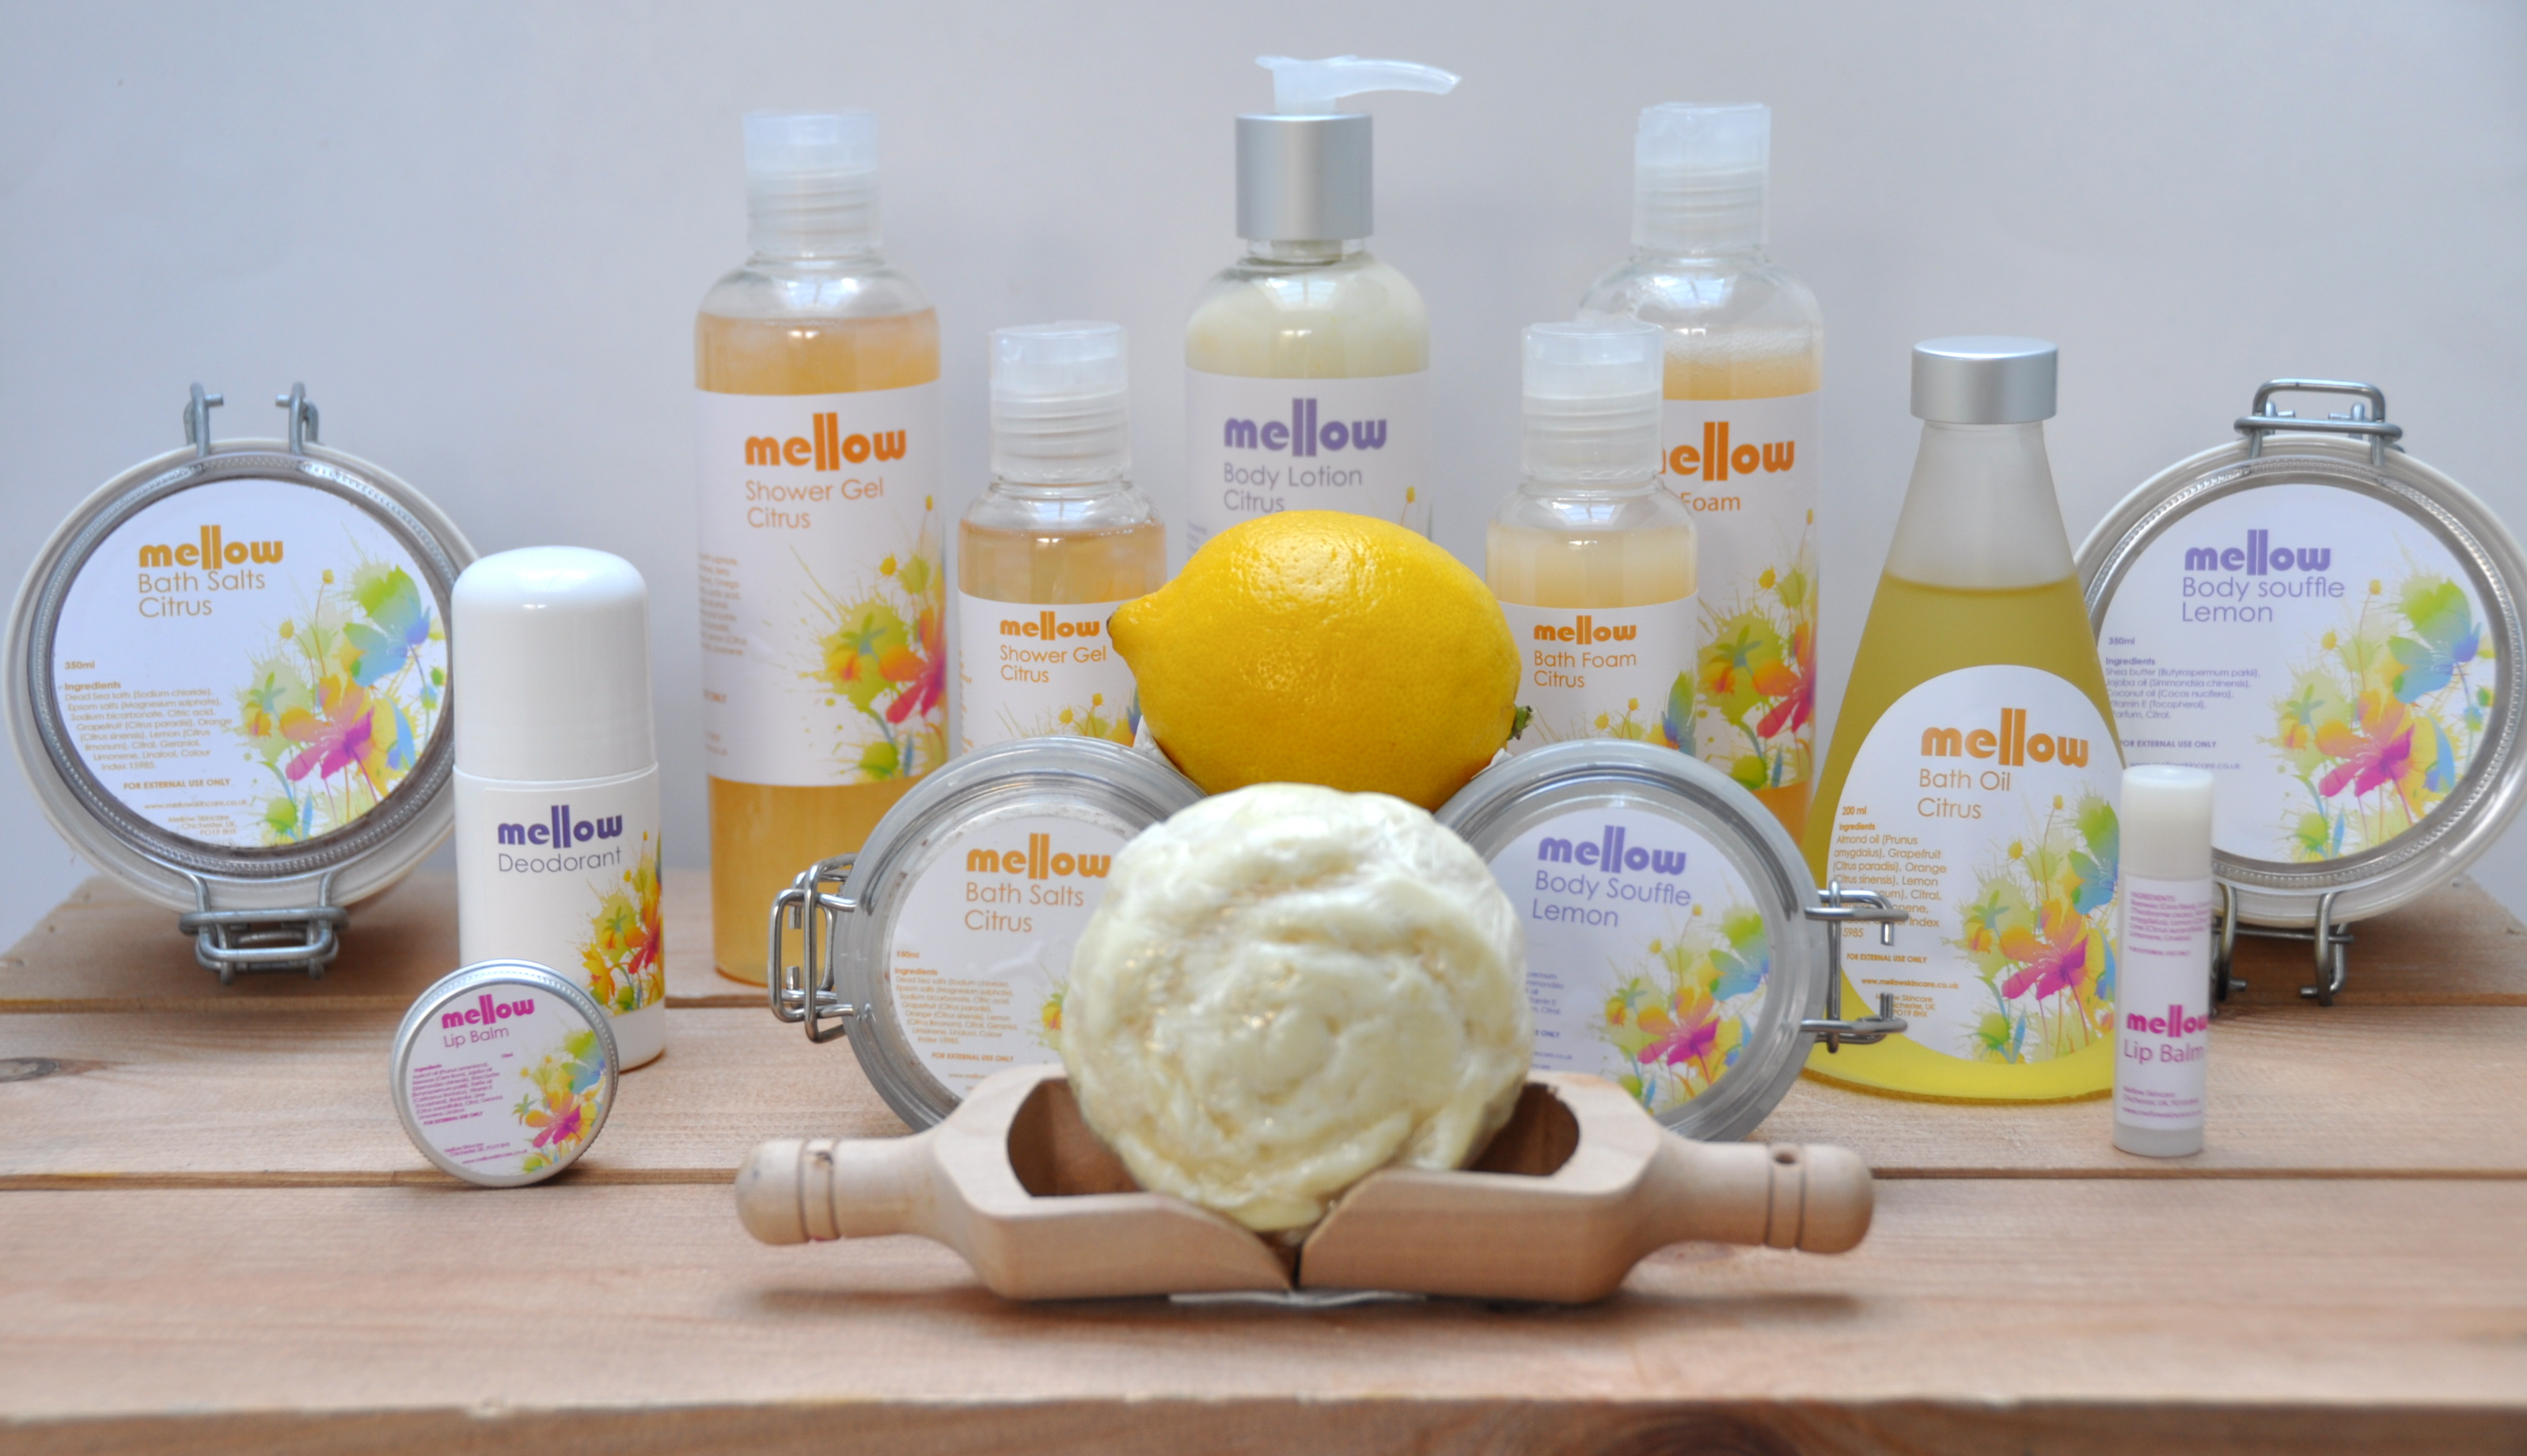 The power of Citrus fruits on our senses and our skin